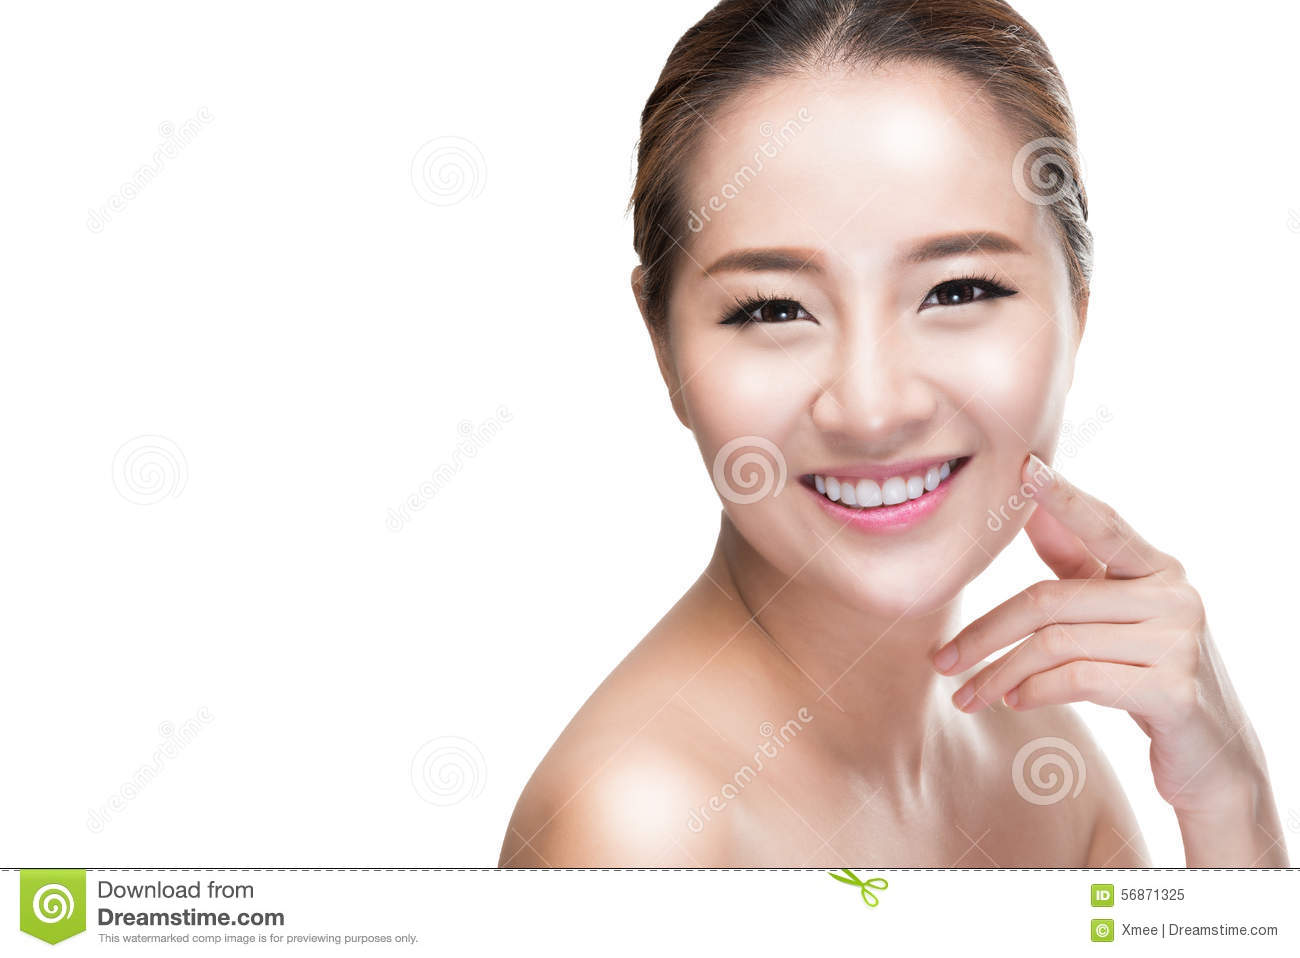 asian-beauty-skincare-woman-touching-skin-face-beauty-treatment-concept-beautiful-perfect-laughing-happy-healthy-body-care-56871325.jpg